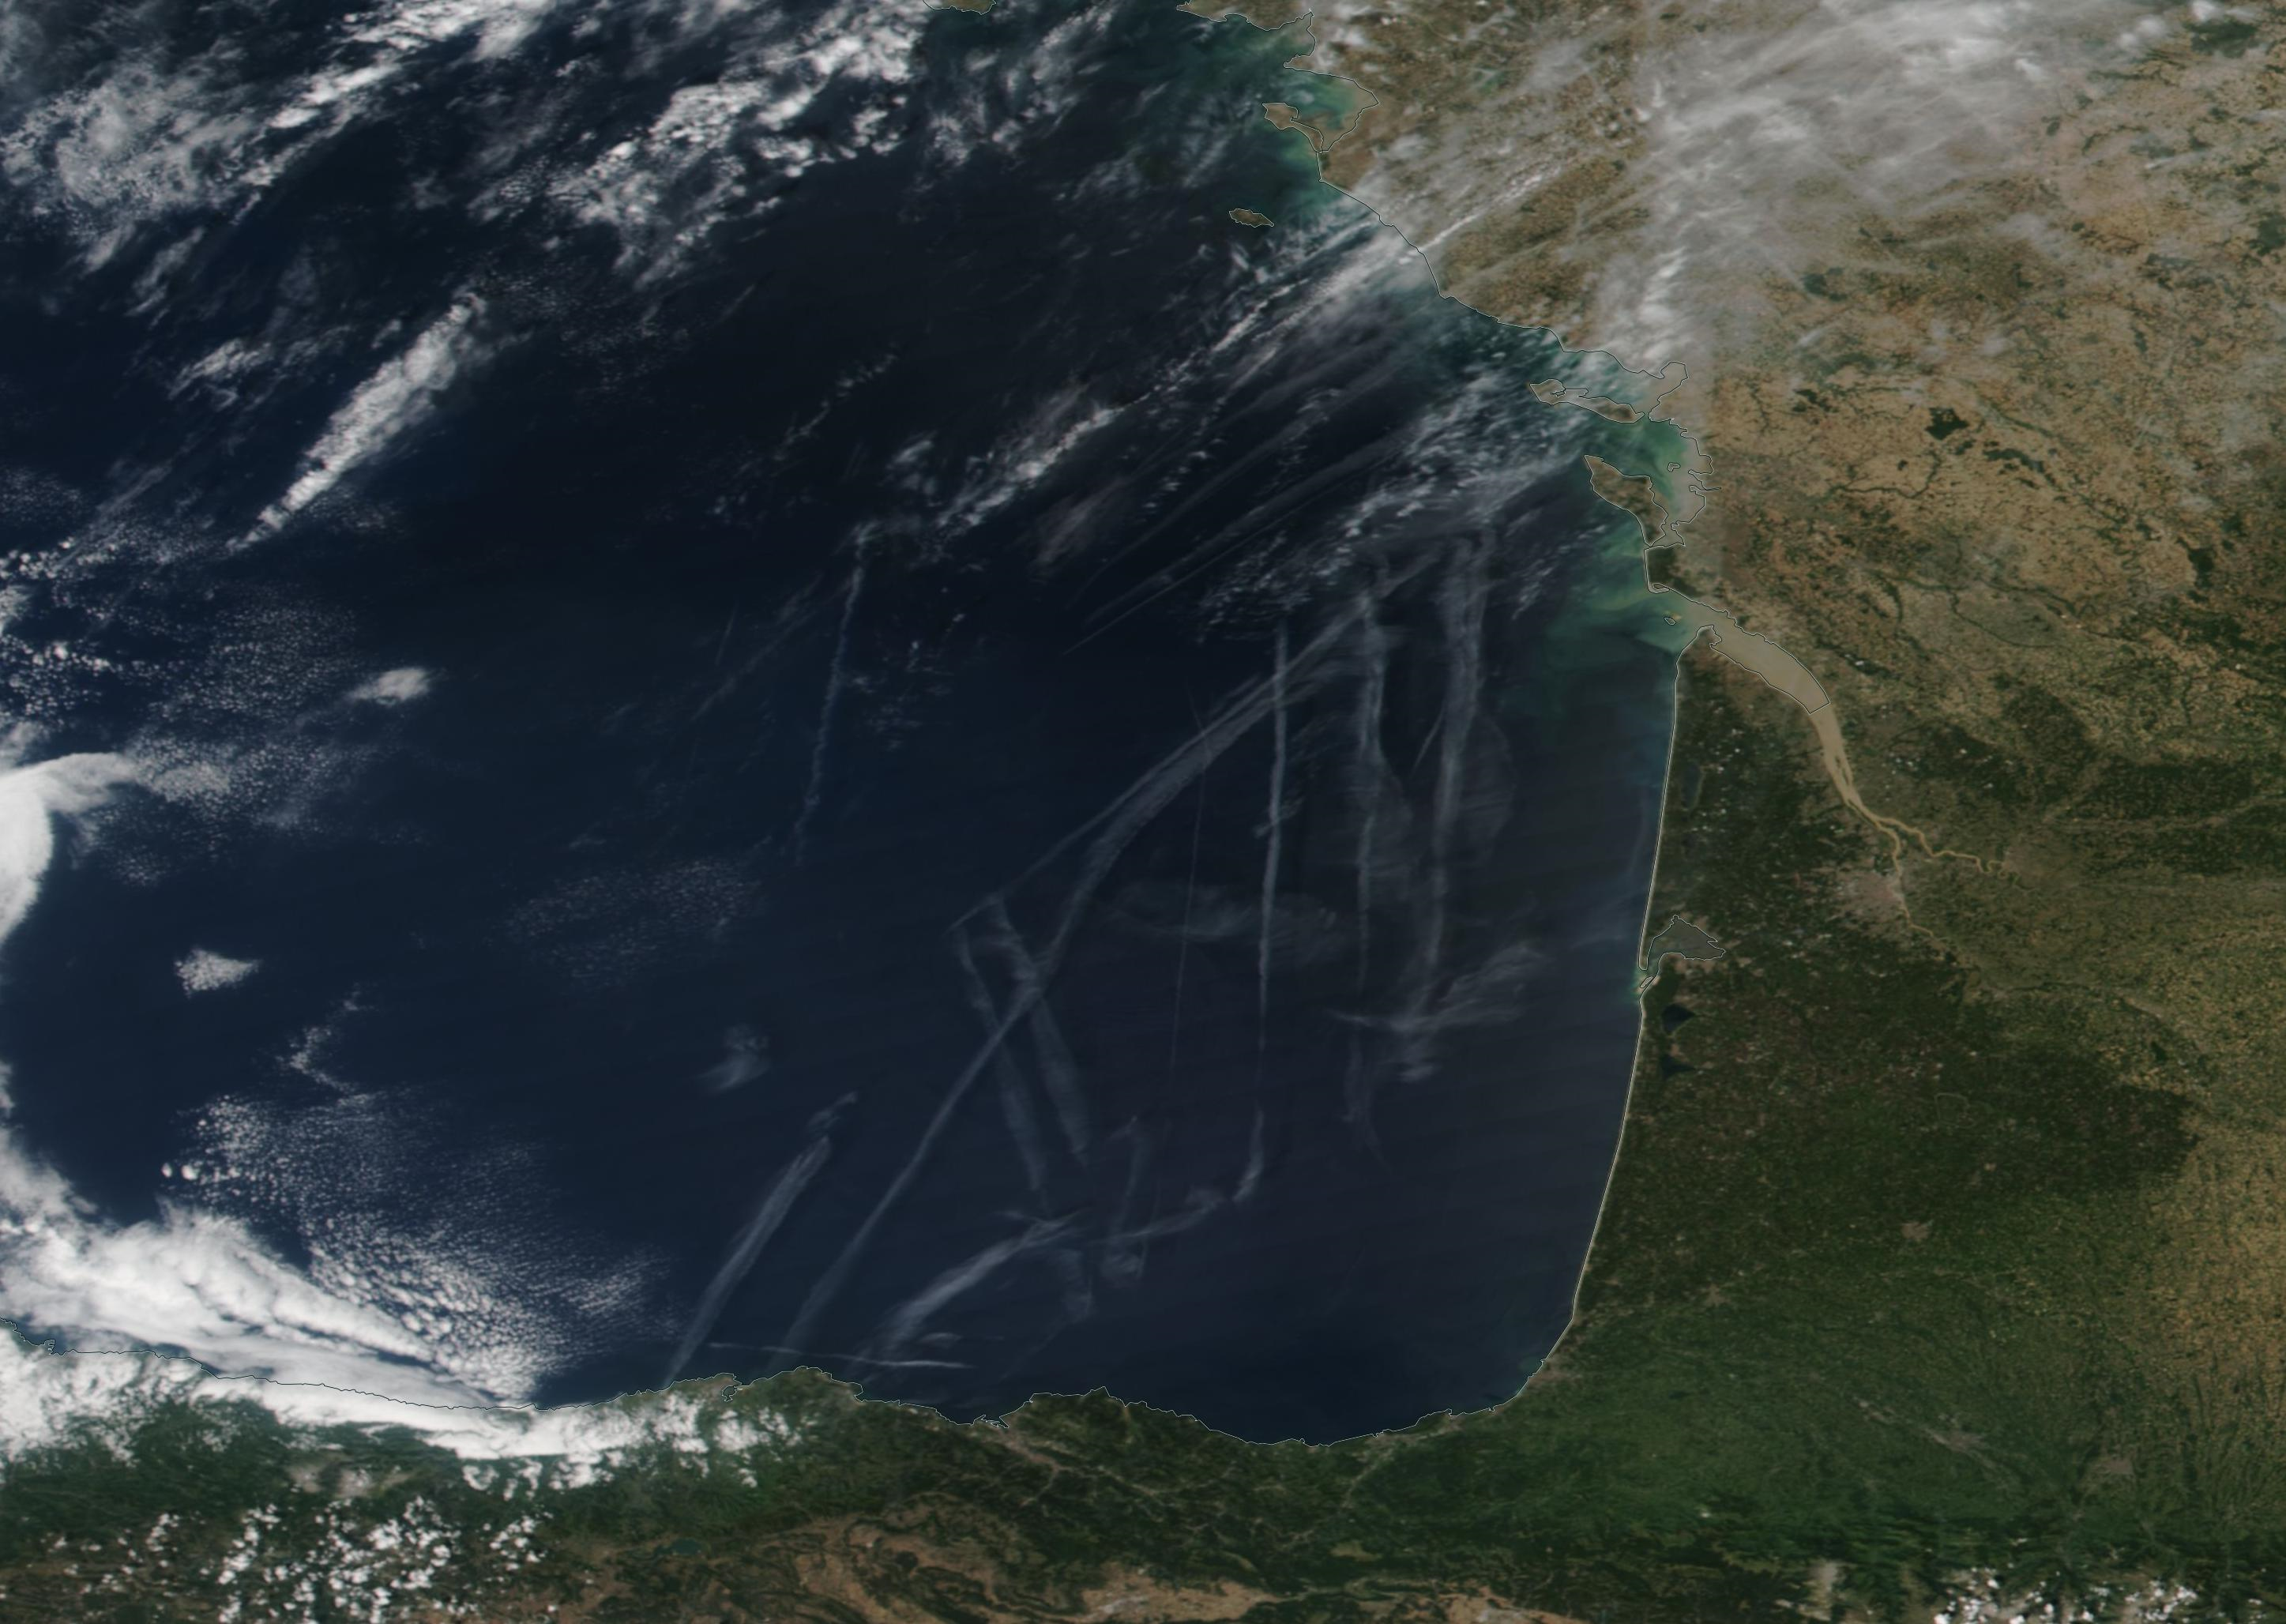 Bay of Biscay, Gironde, Bordeaux chemtrail geoengineering  https://go.nasa.gov/2OL82Q8